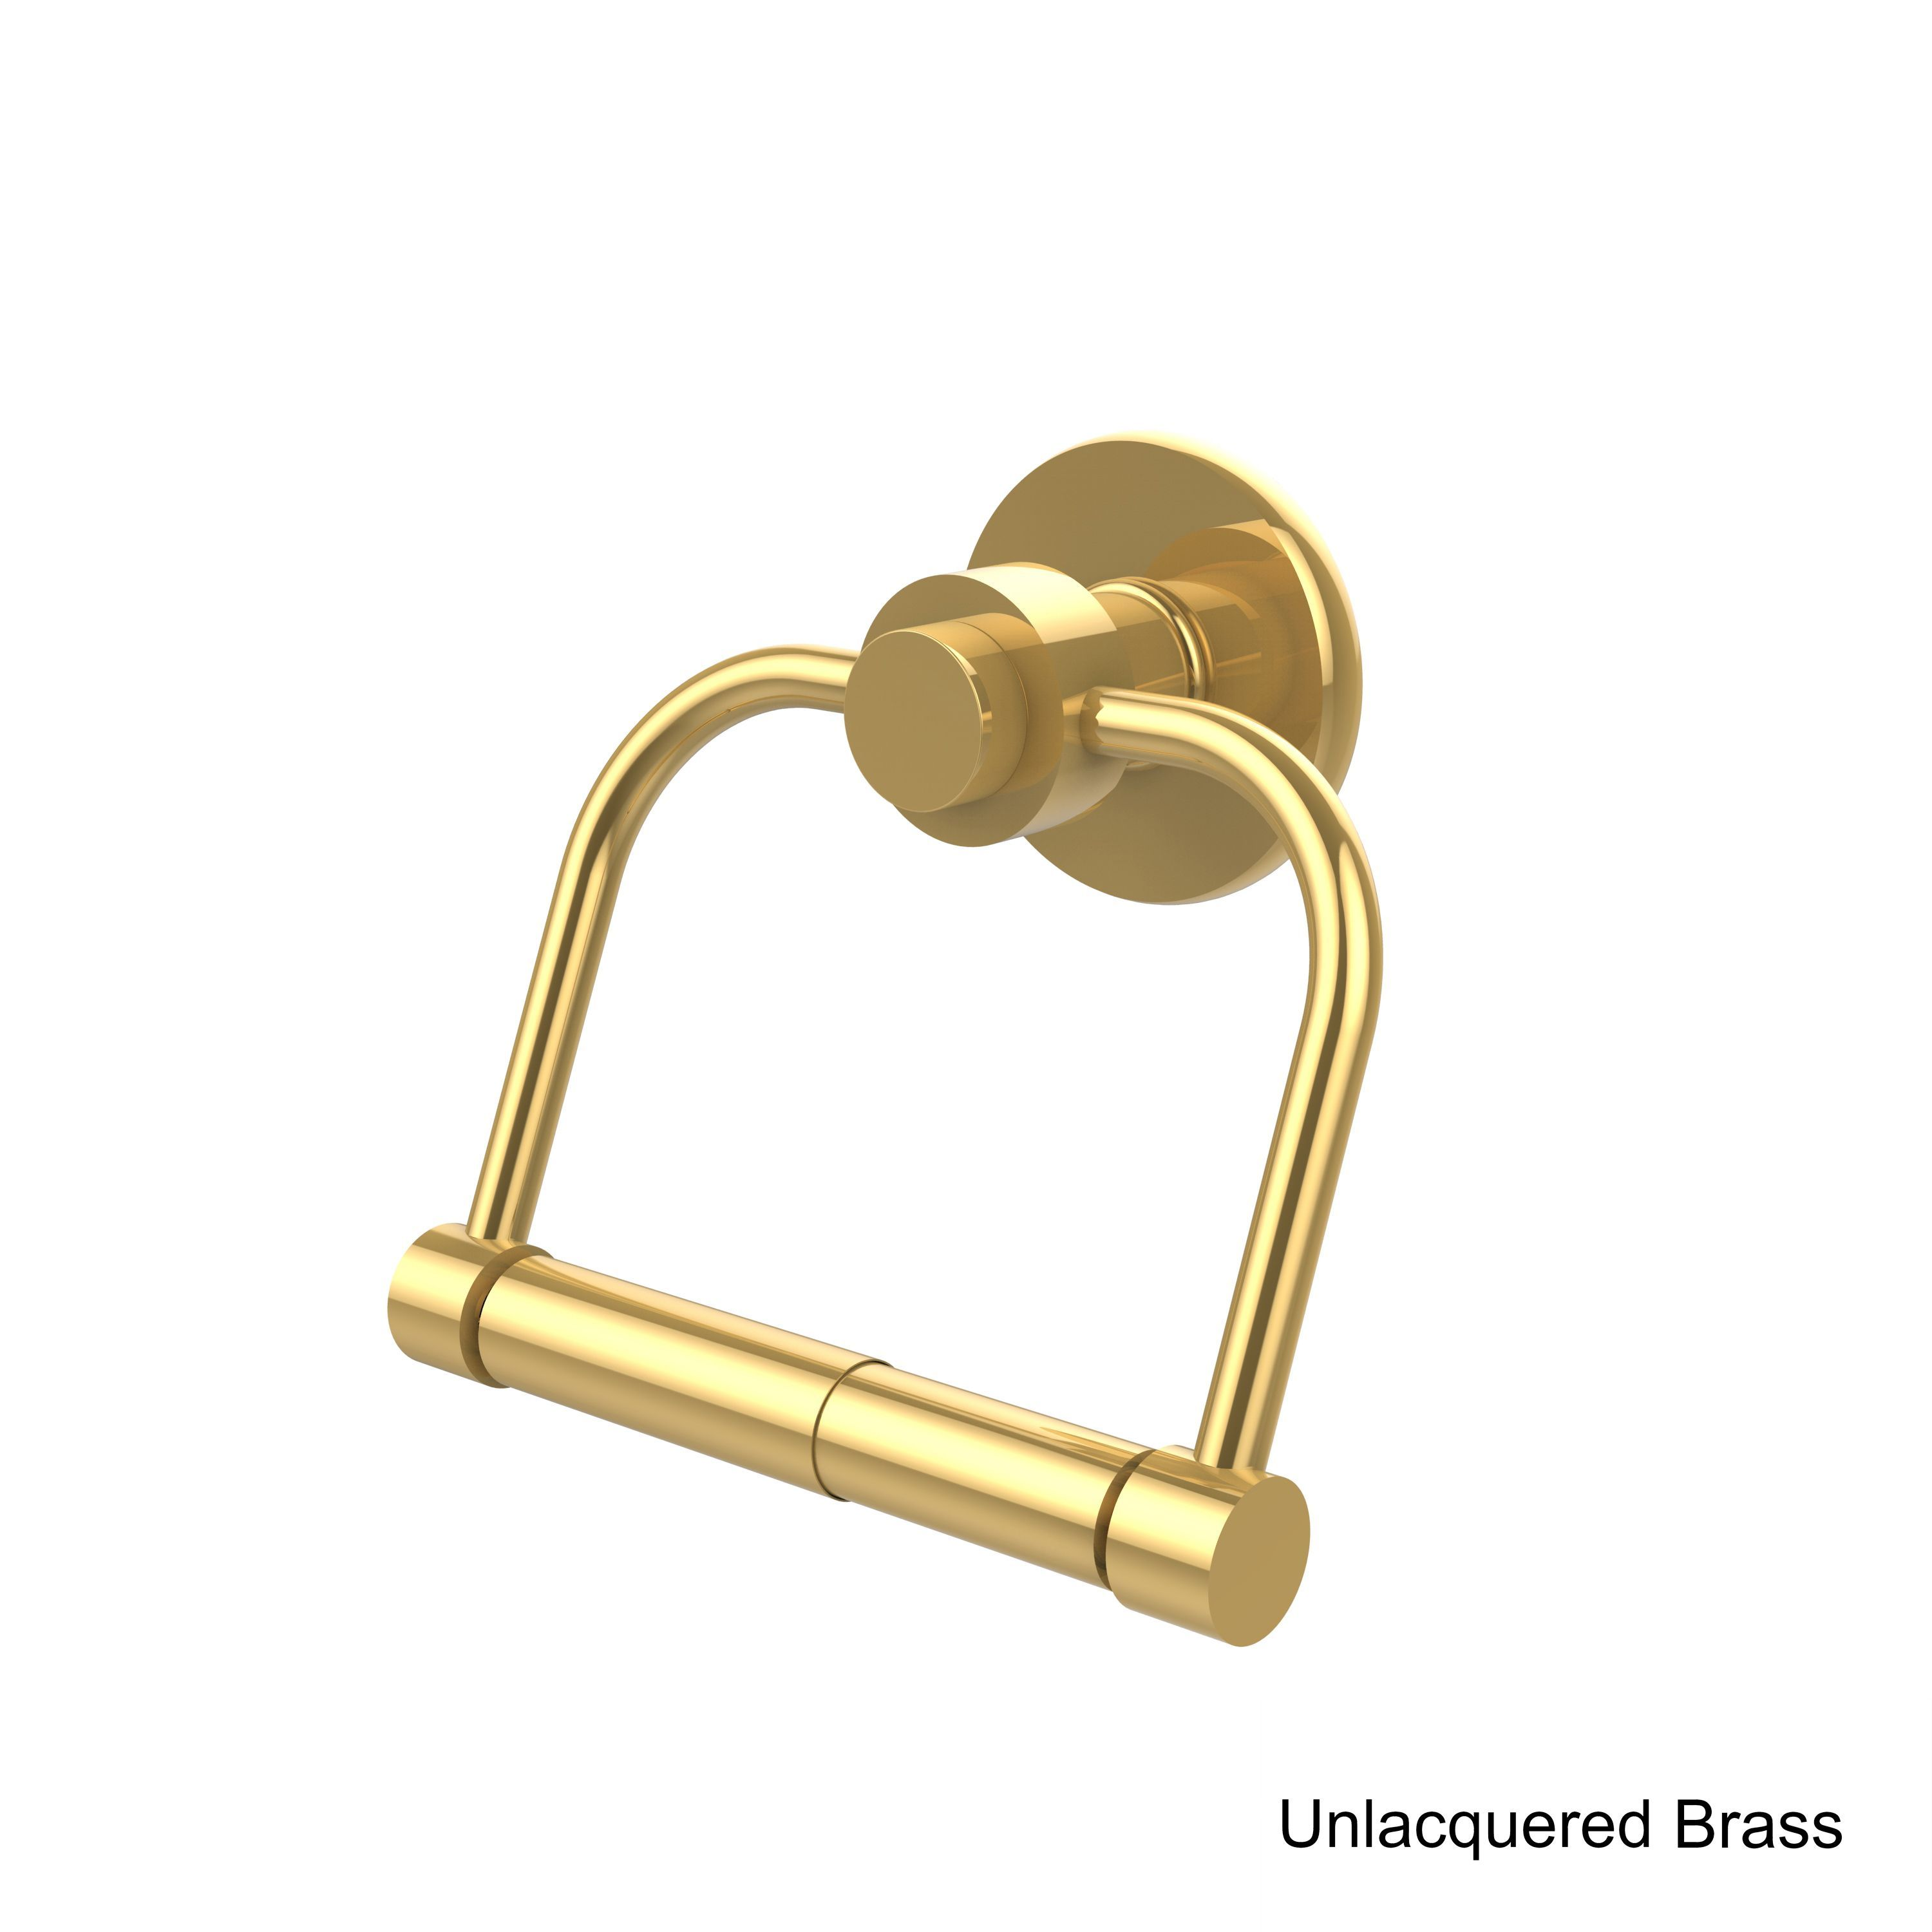 Mercury Collection Clear Brass 2 Post Toilet Tissue Holder (Unlacquered Brass)